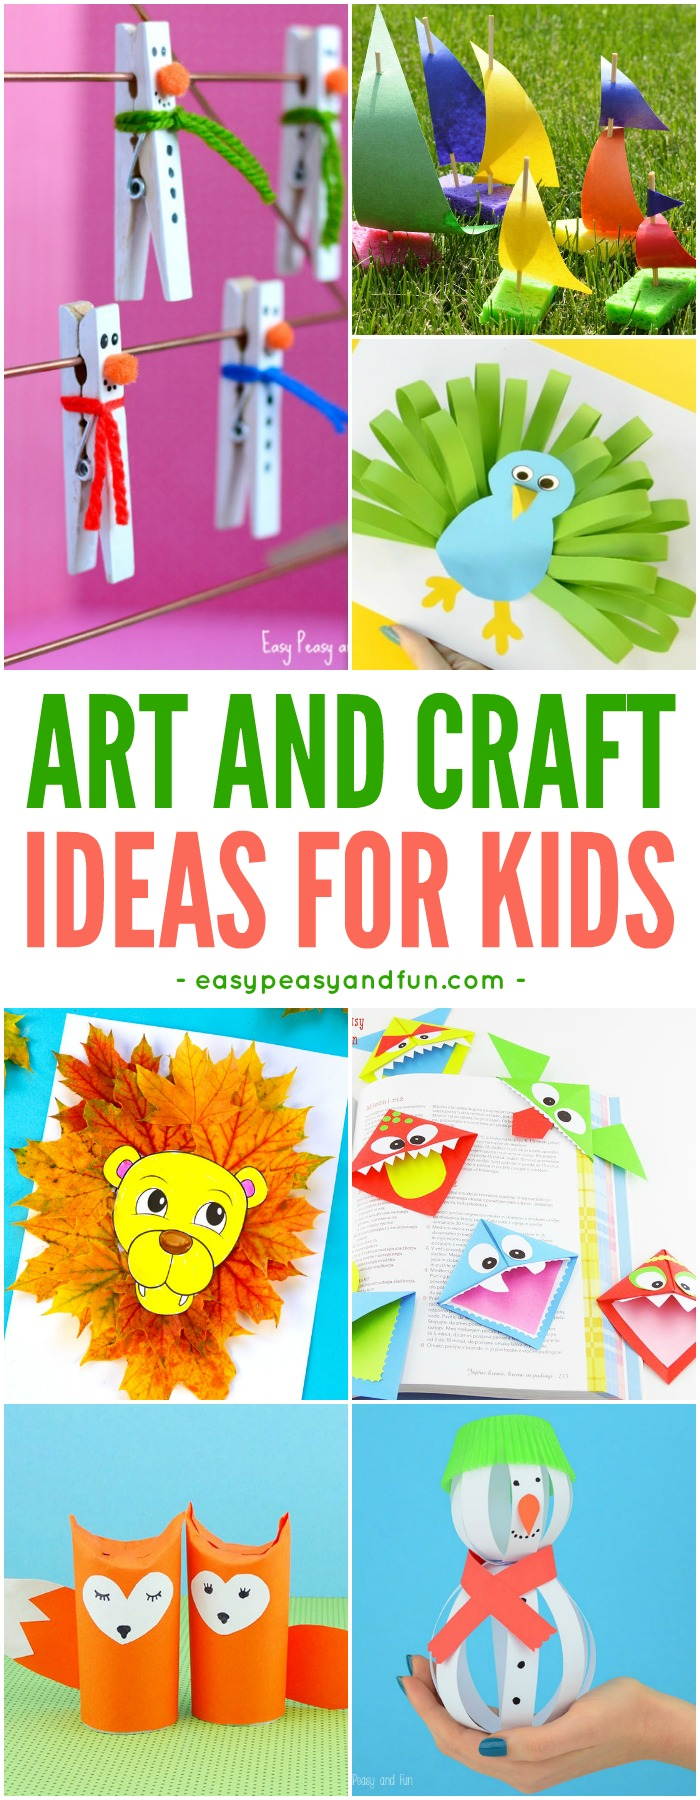 Crafts For Kids Tons Of Art And Craft Ideas To